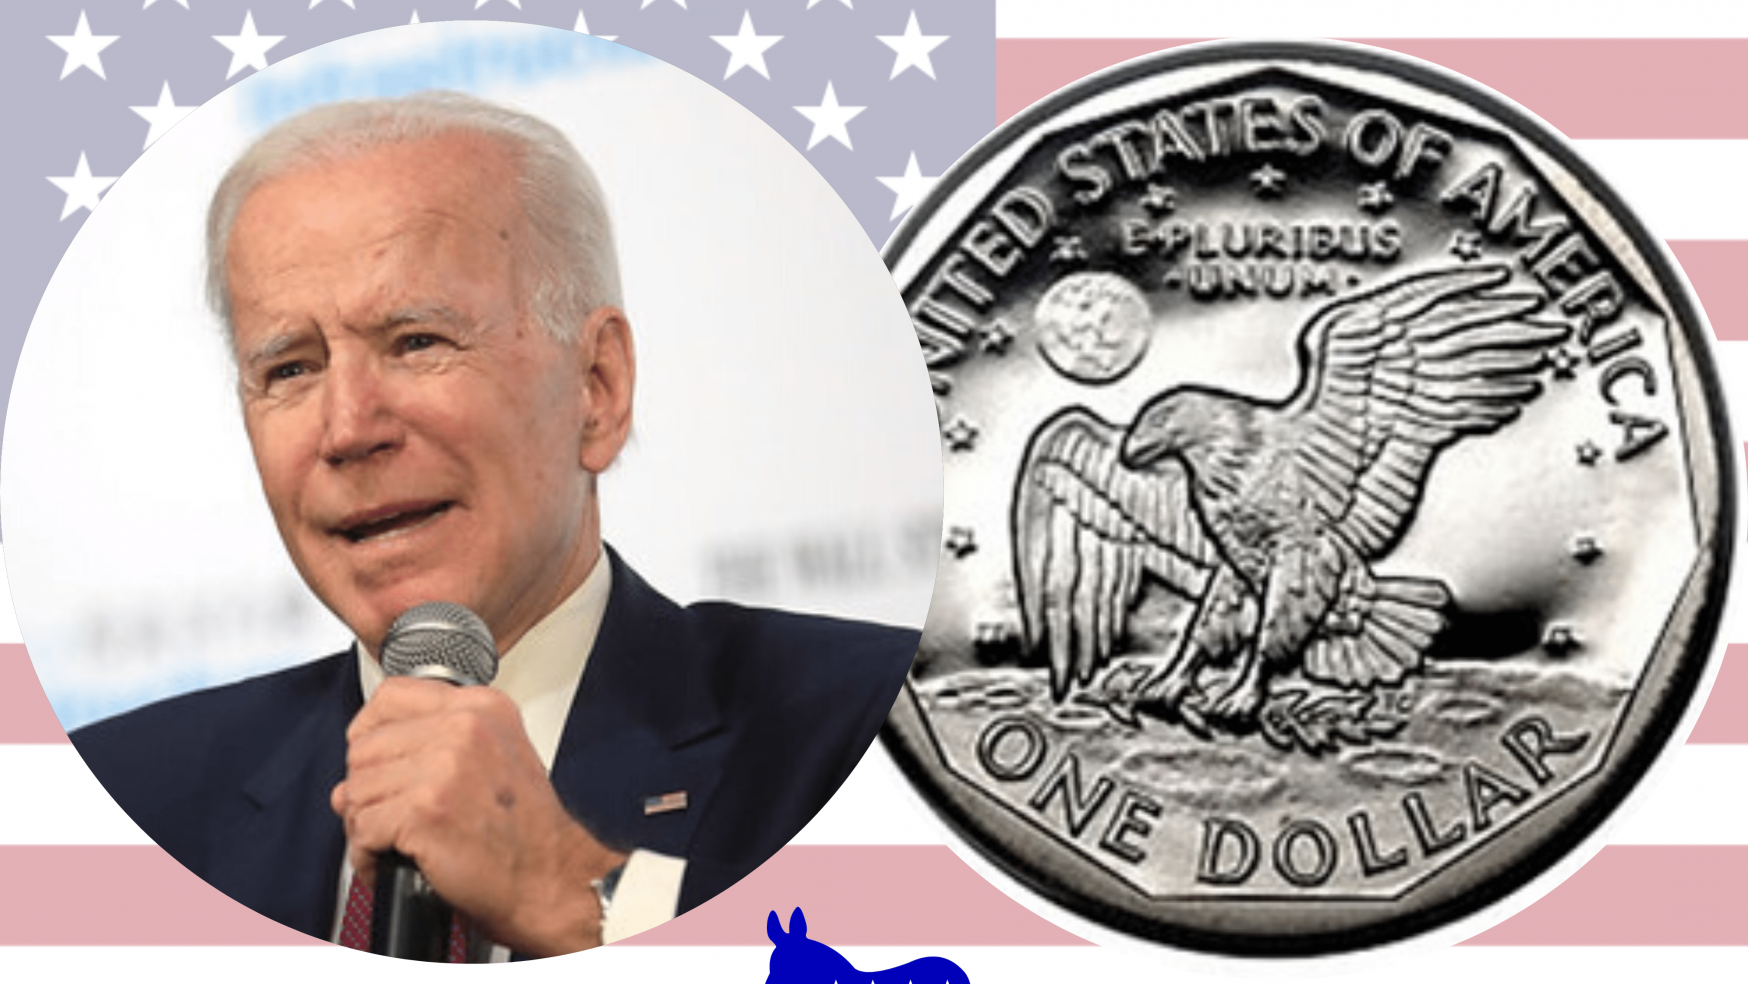 The two sides of the Democratic coin: Joe Biden